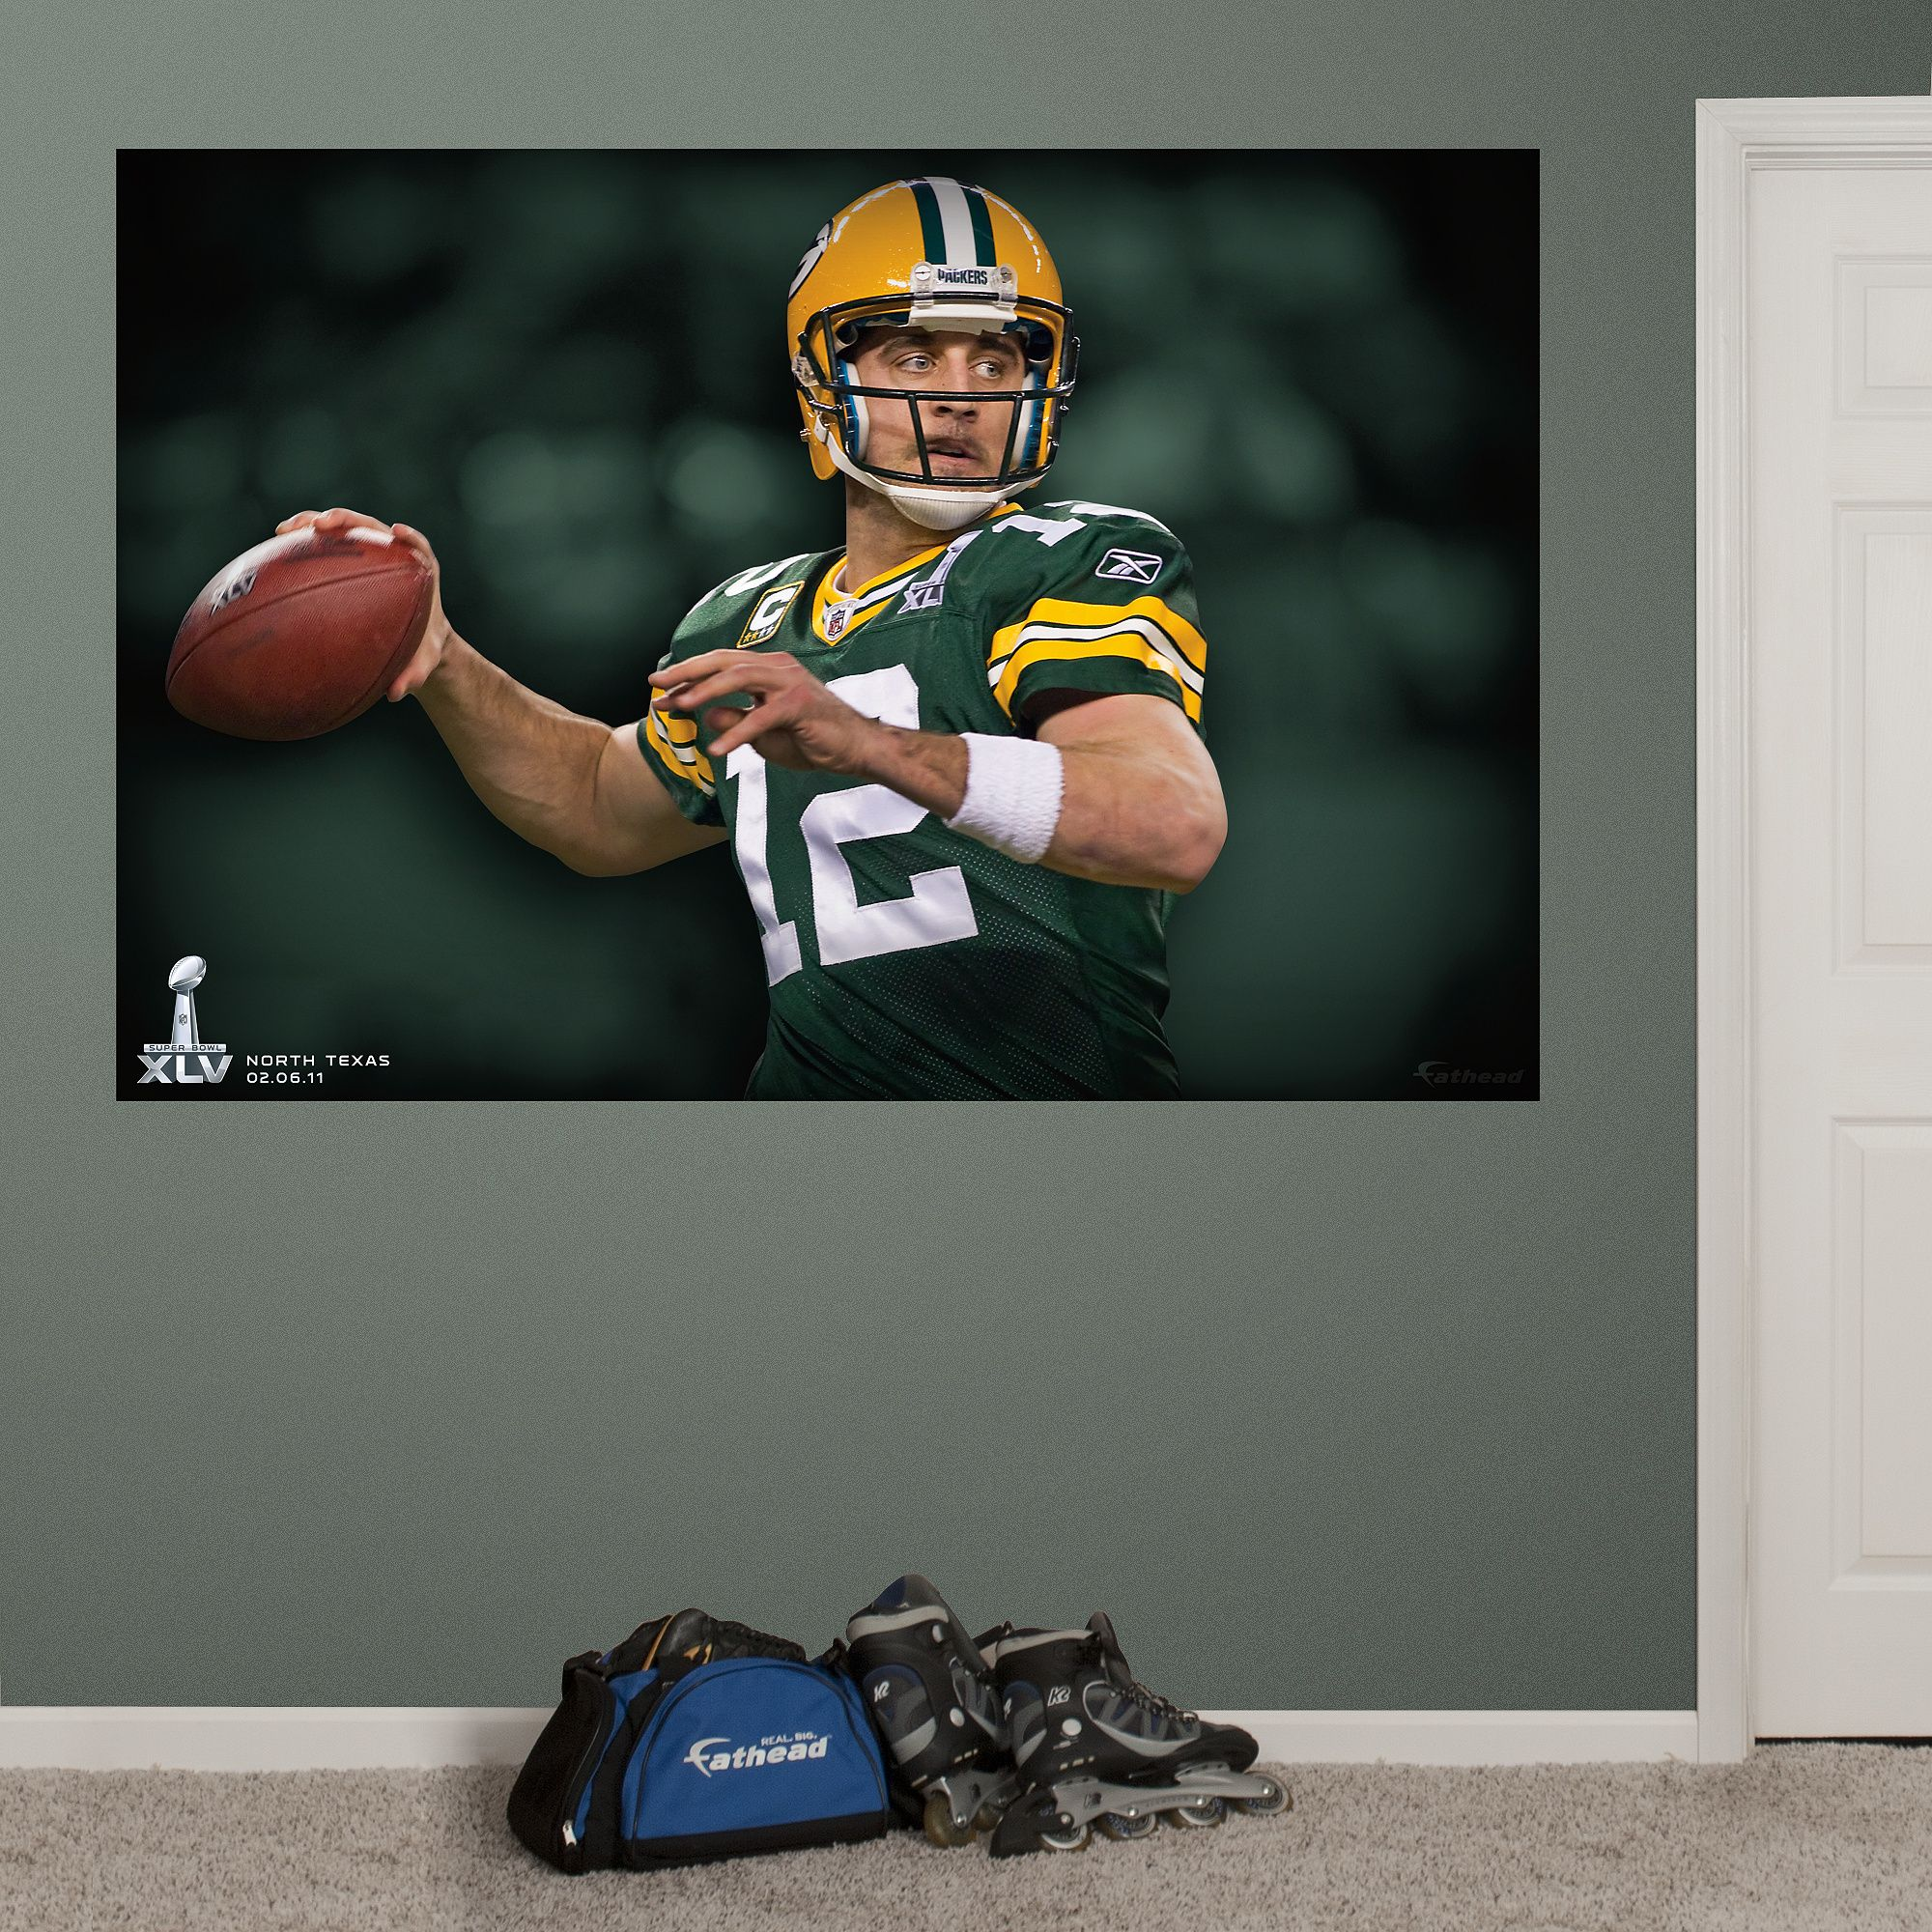 Aaron Rodgers Super Bowl Xlv Mural Superbowl Xlv Aaron Rodgers Super Bowl Green Bay Packers